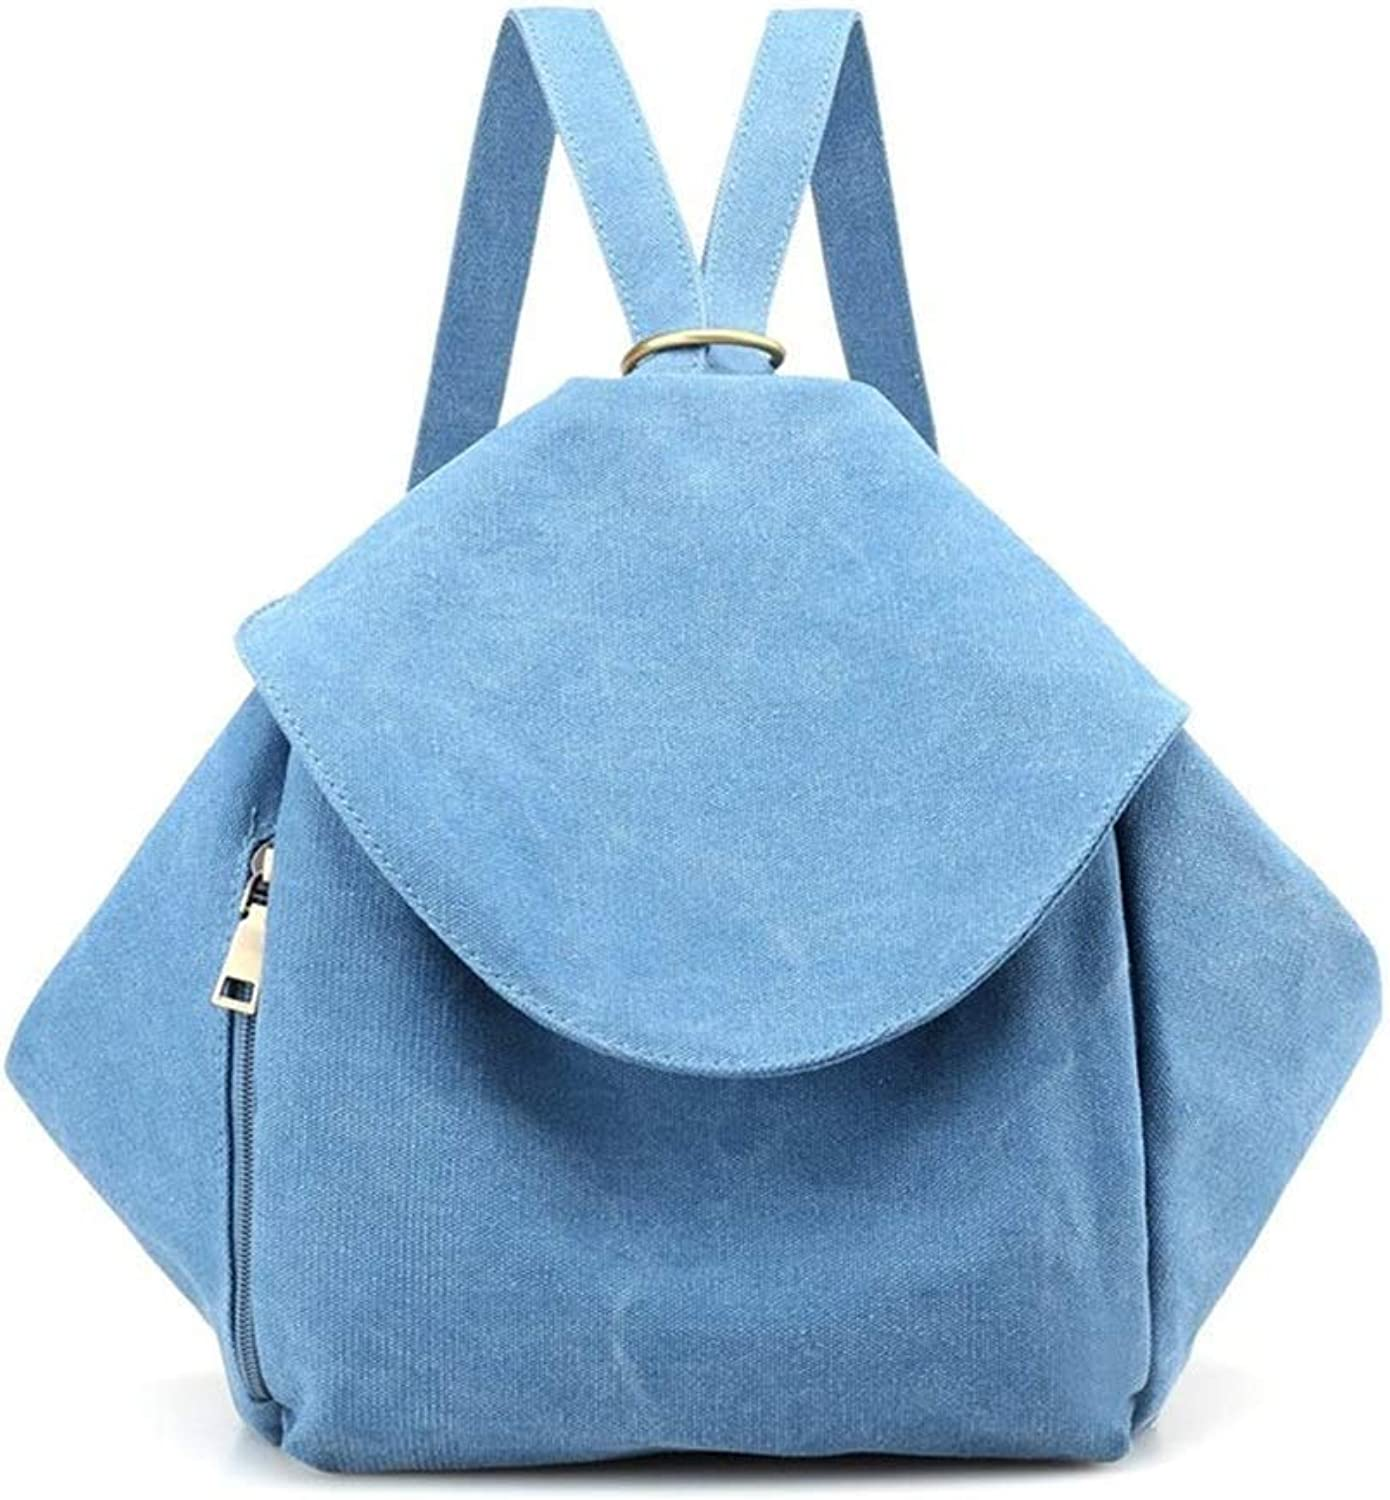 NSHUN Satchel Purse Handbags and Backpack Style Two Uses Shoulder Bags for Women LargeCapacity Tote PU Leather (color   blueee)